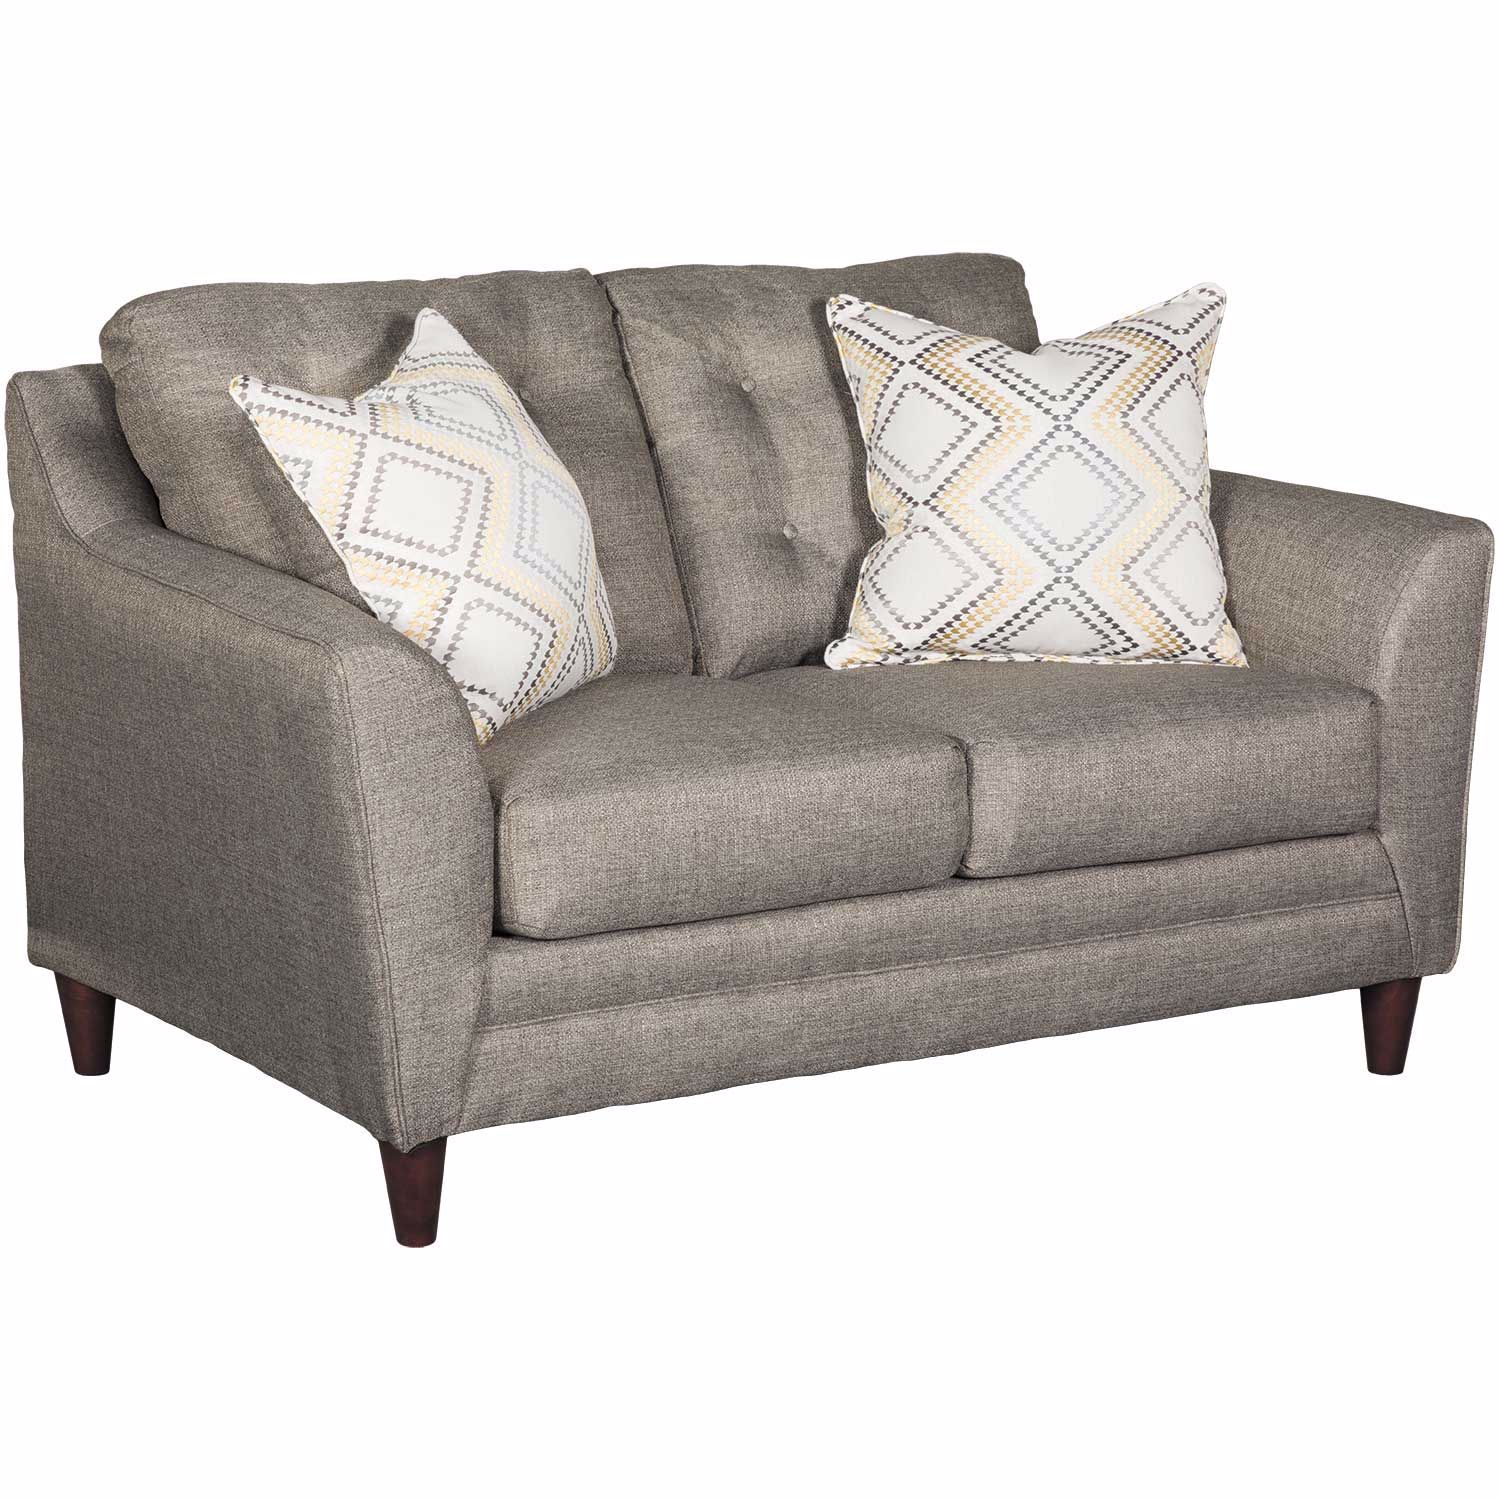 Astounding Jensen Grey Tufted Loveseat Alphanode Cool Chair Designs And Ideas Alphanodeonline